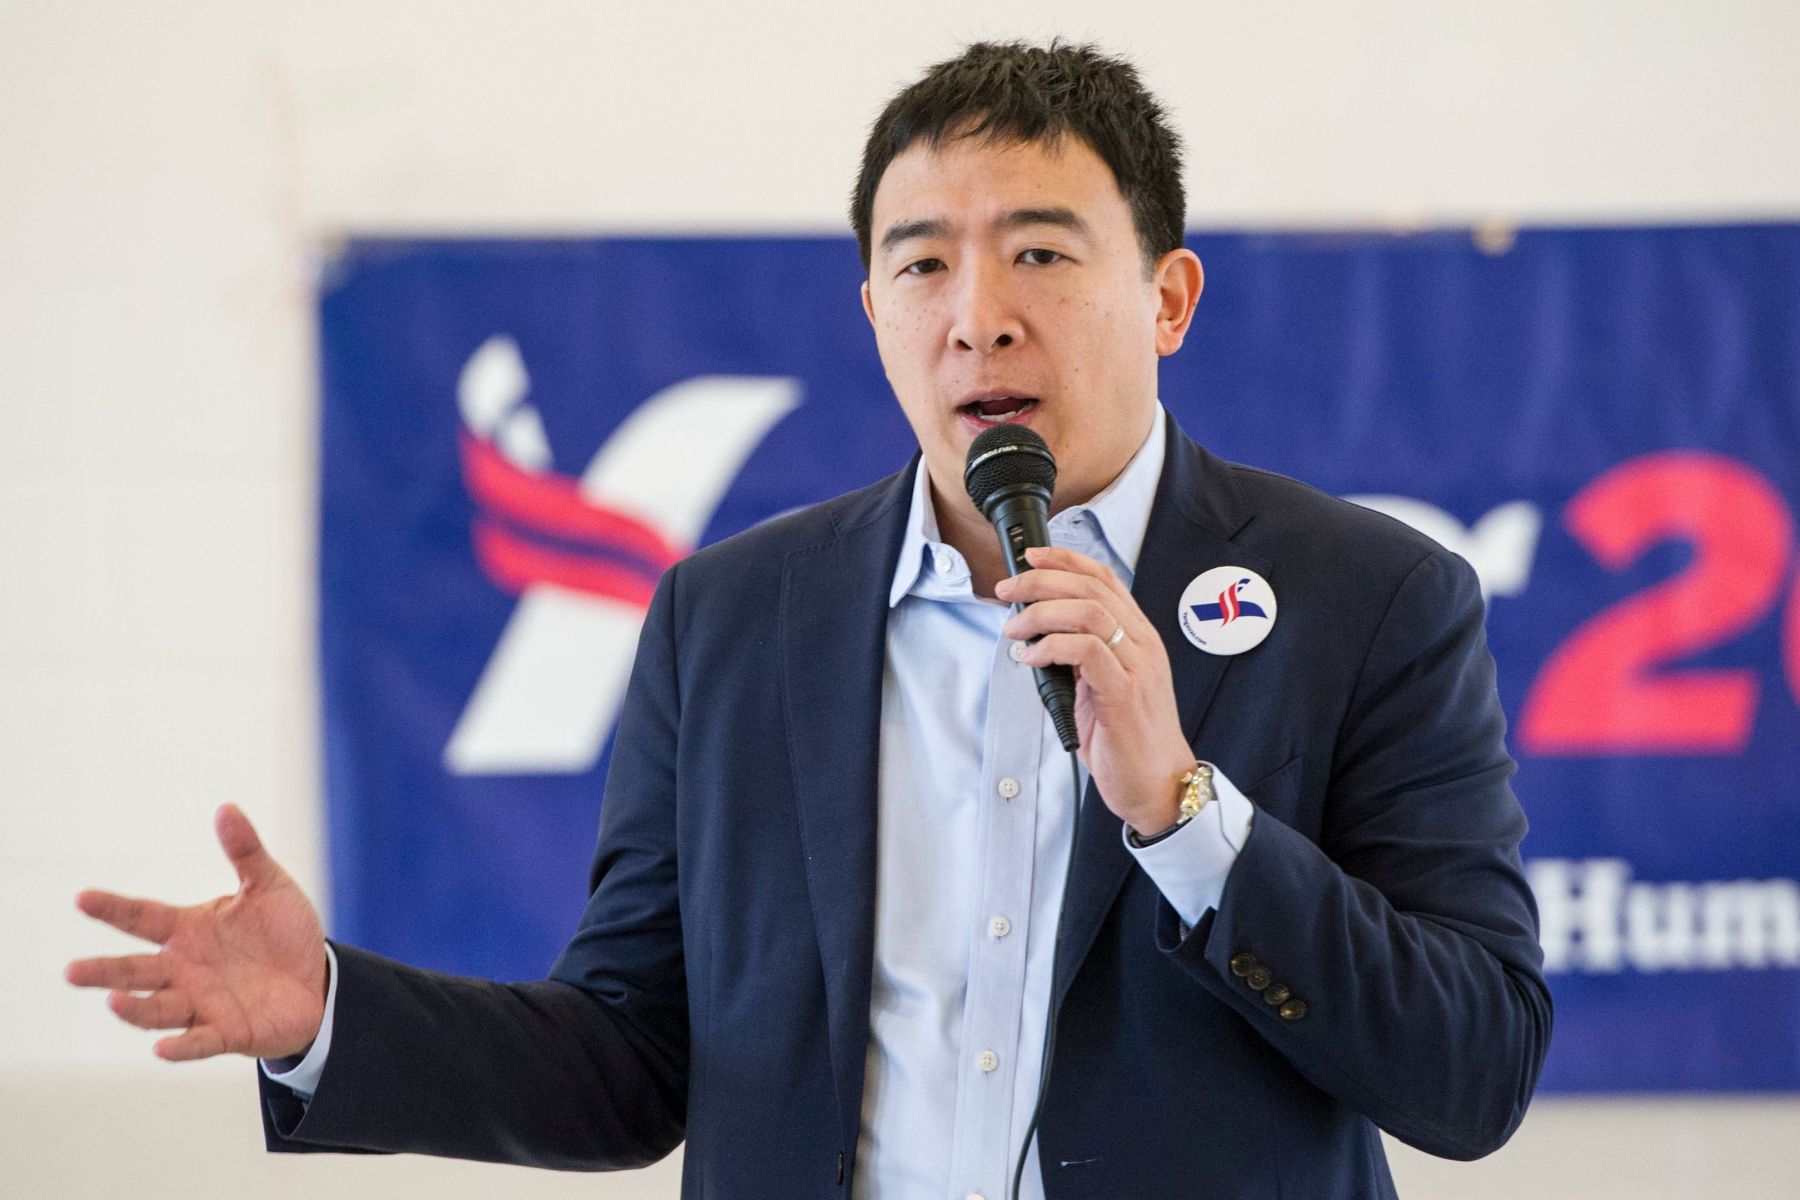 Andrew Yang, a candidate in the Democratic primaries for president, speaks at a town hall meeting sponsored by the Euclid chapter of the NAACP at Christ Lutheran Church in ClevelandElection 2020 Yang, Cleveland, USA - 24 Feb 2019